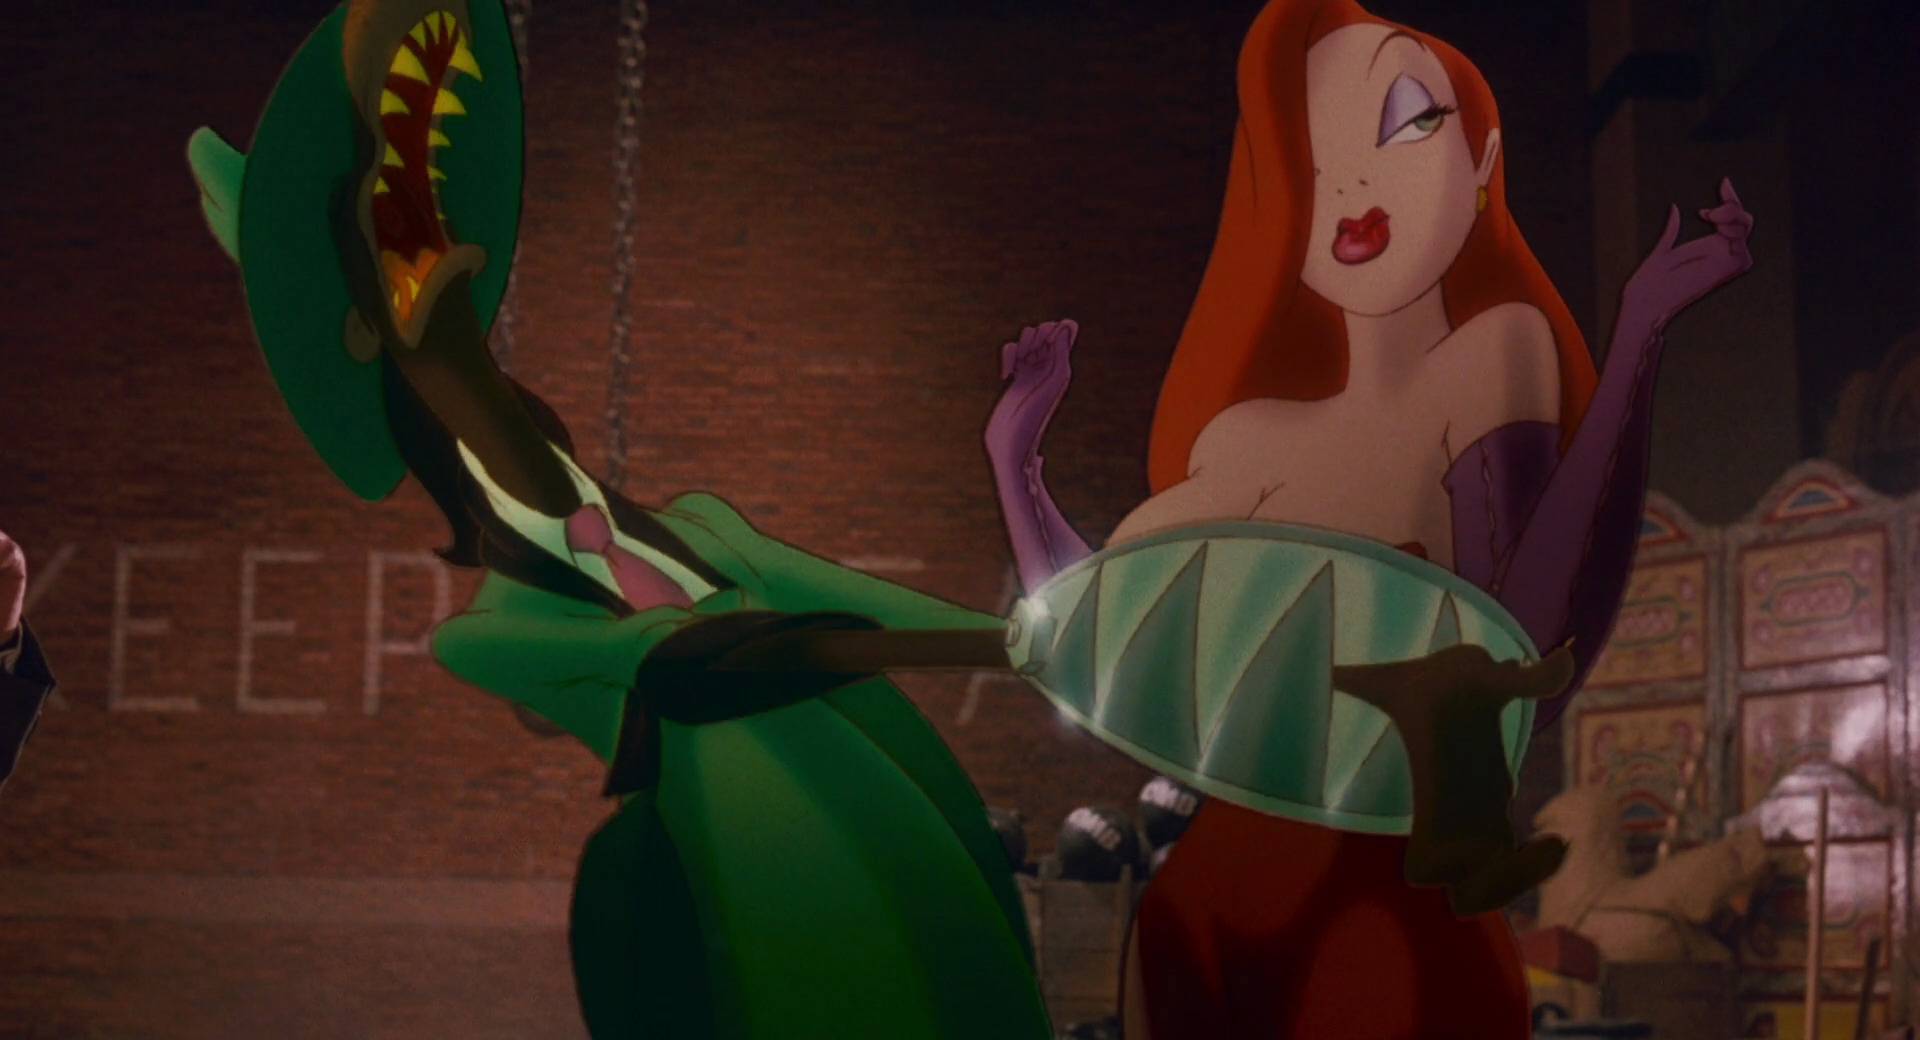 image who framed roger rabbit disneyscreencapscom 9167jpg disney wiki fandom powered by wikia